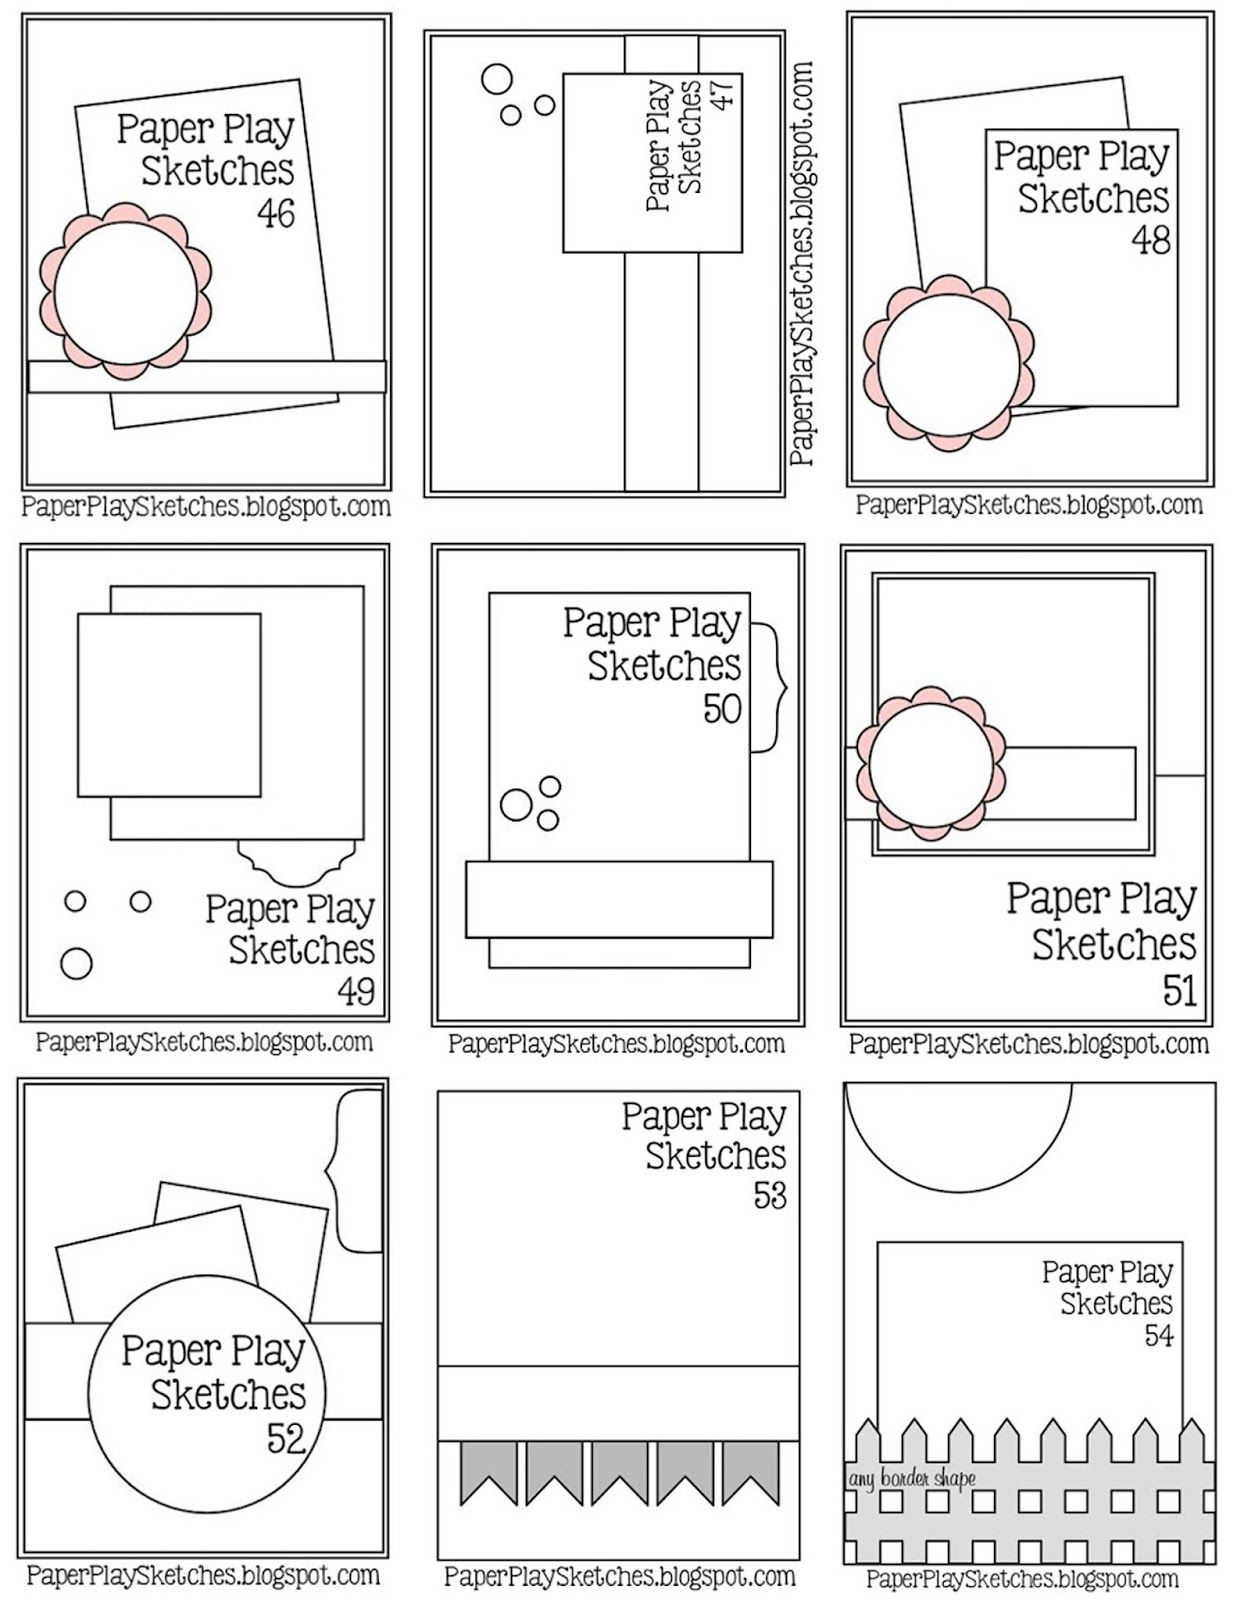 Paper Play Sketches, challenge blog, link up every other Wednesday ...